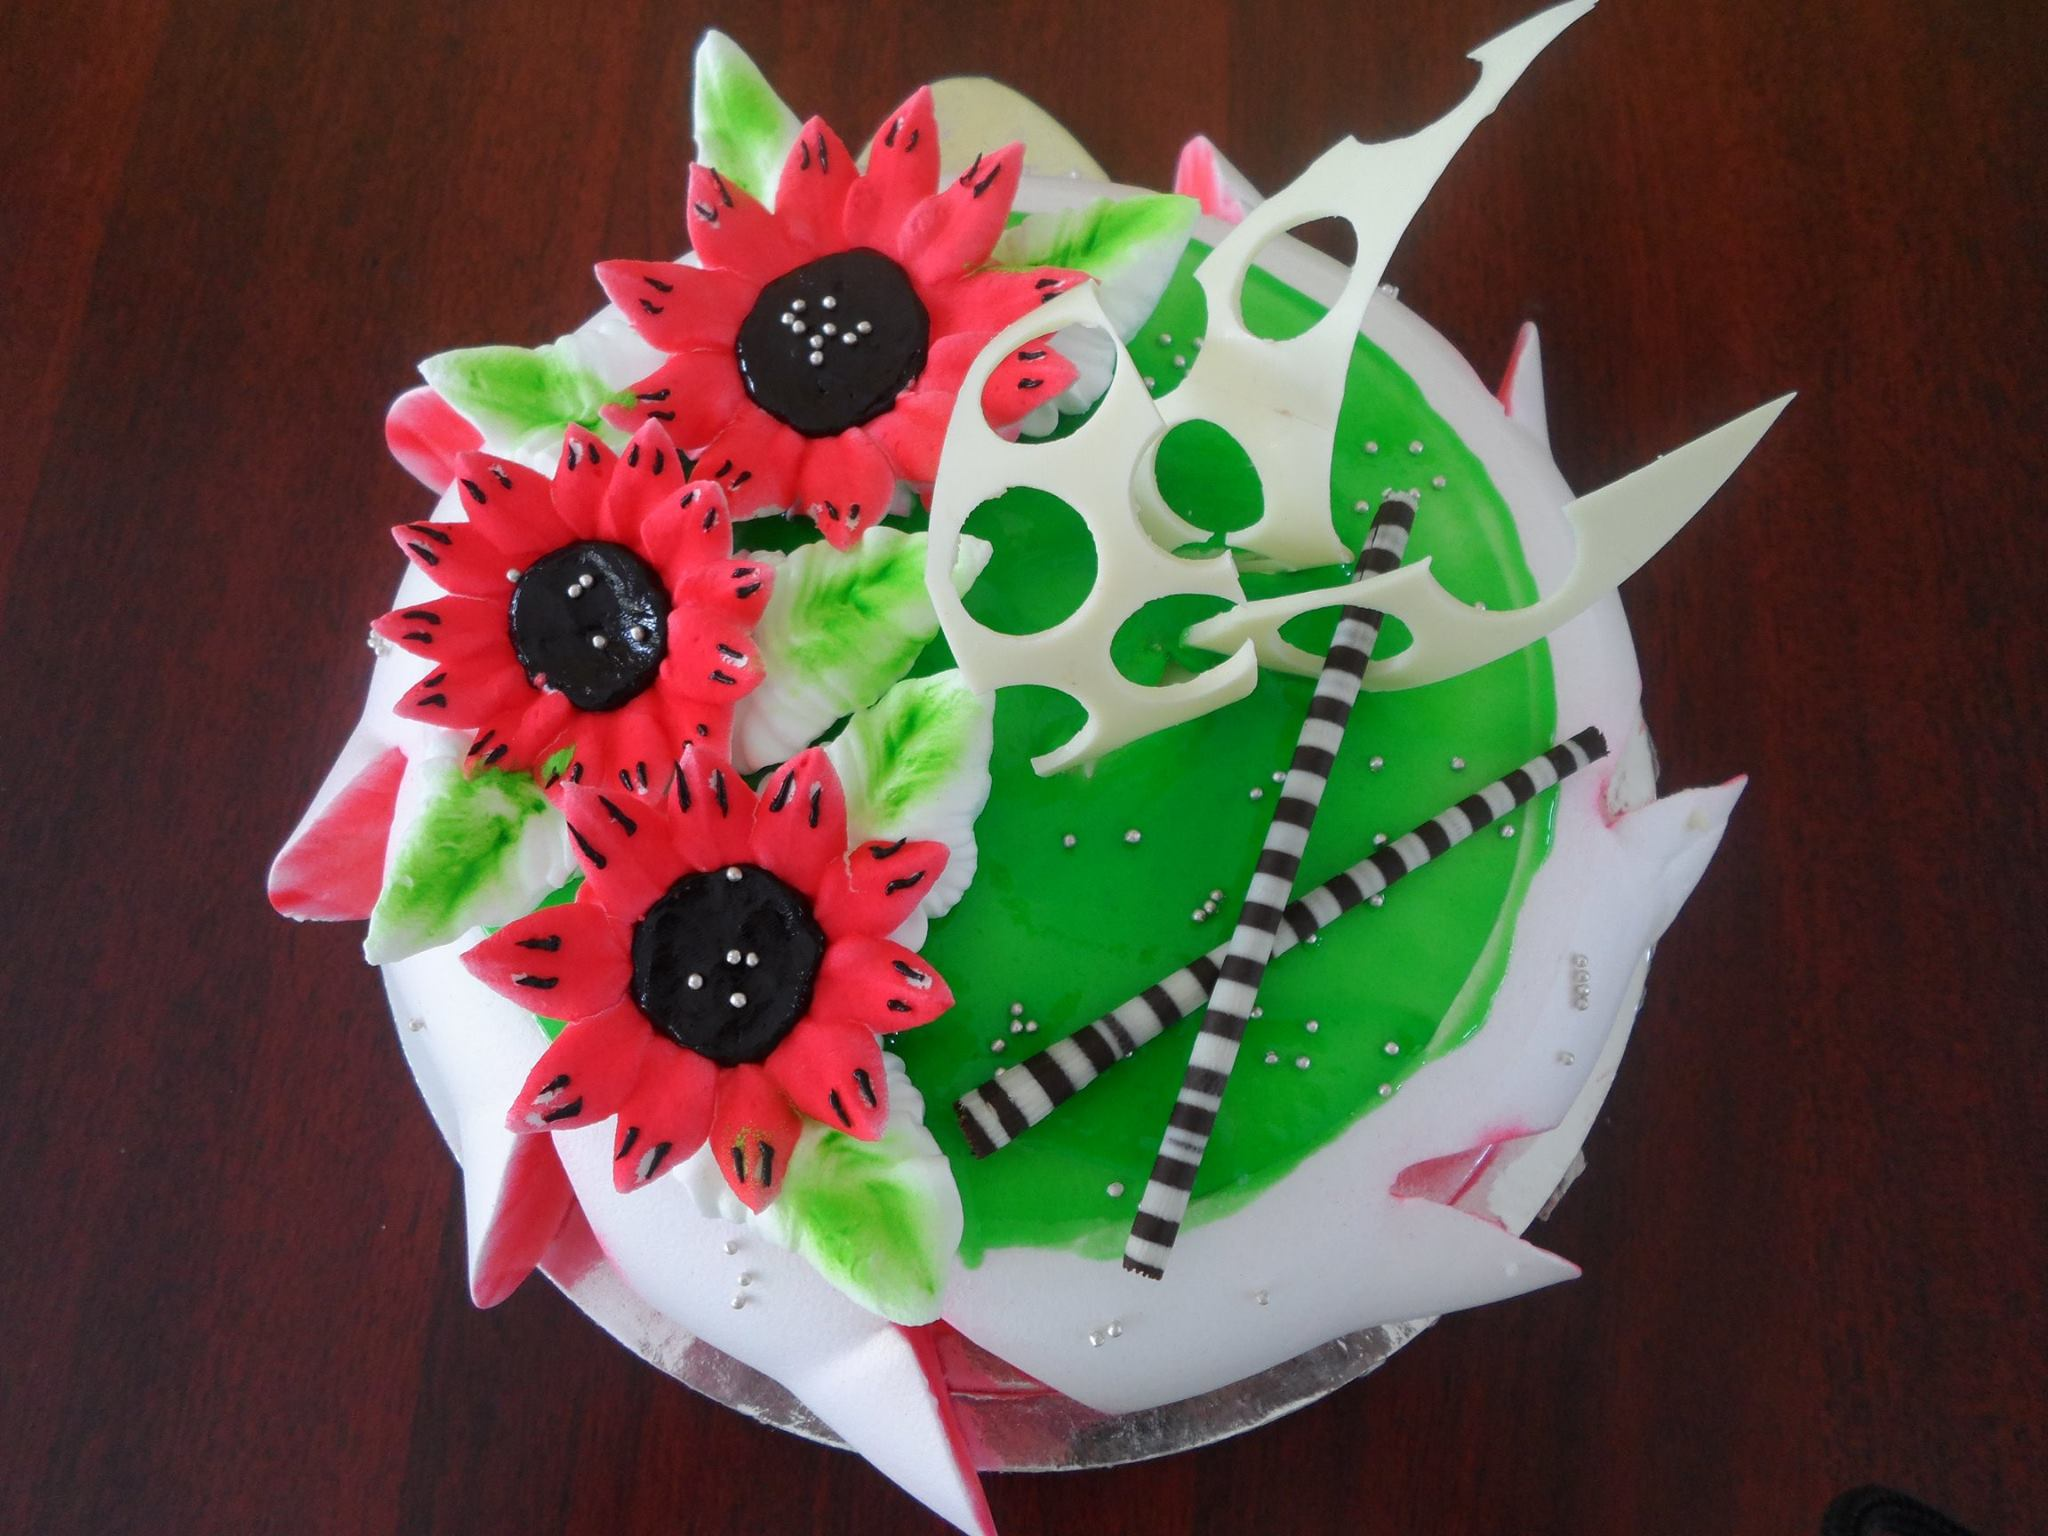 Kiwi and flower with choco carvings cake